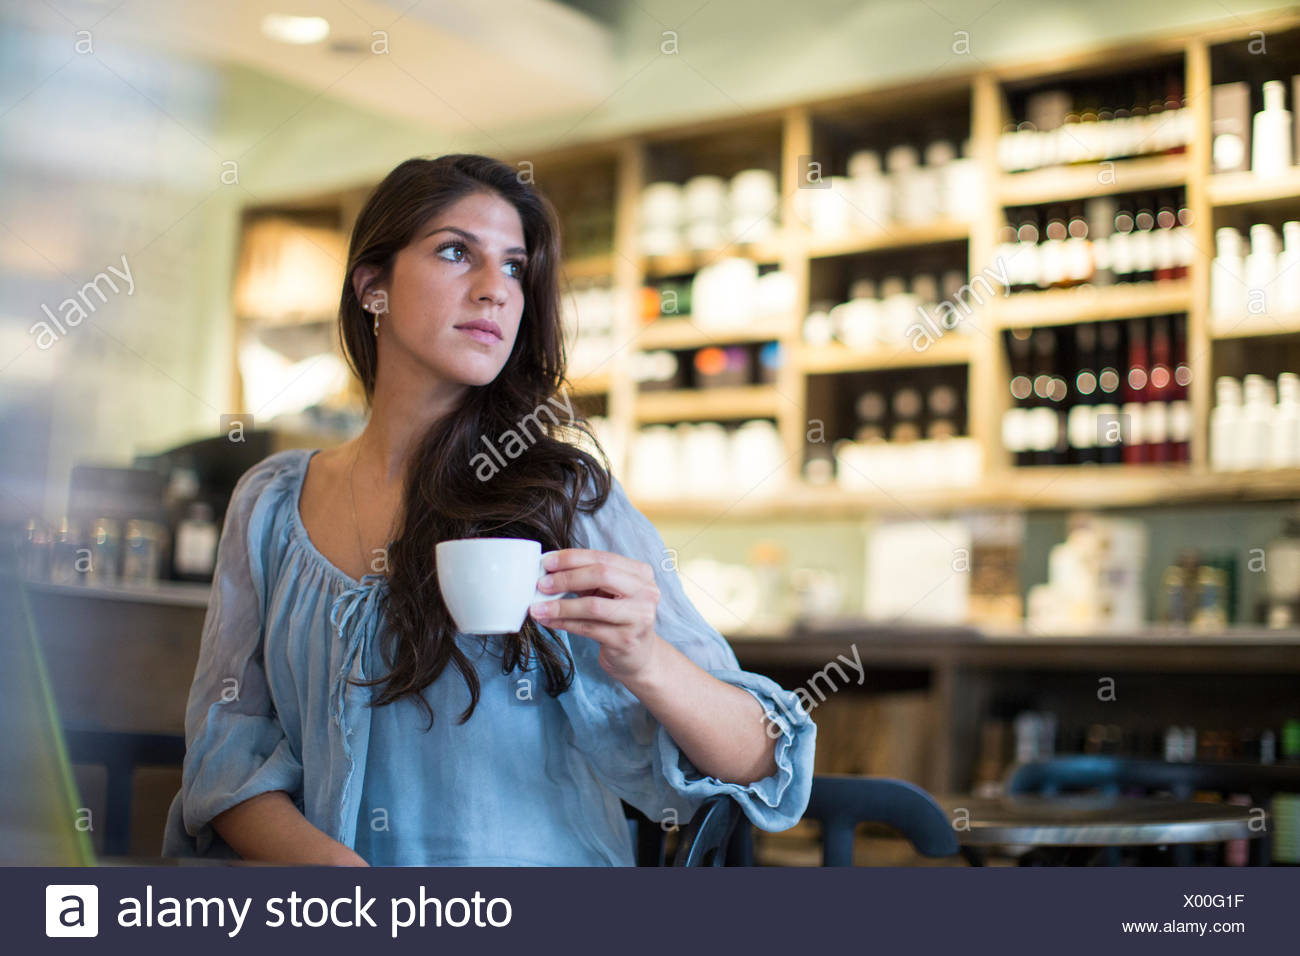 Young woman sitting in cafe looking sideways - Stock Image